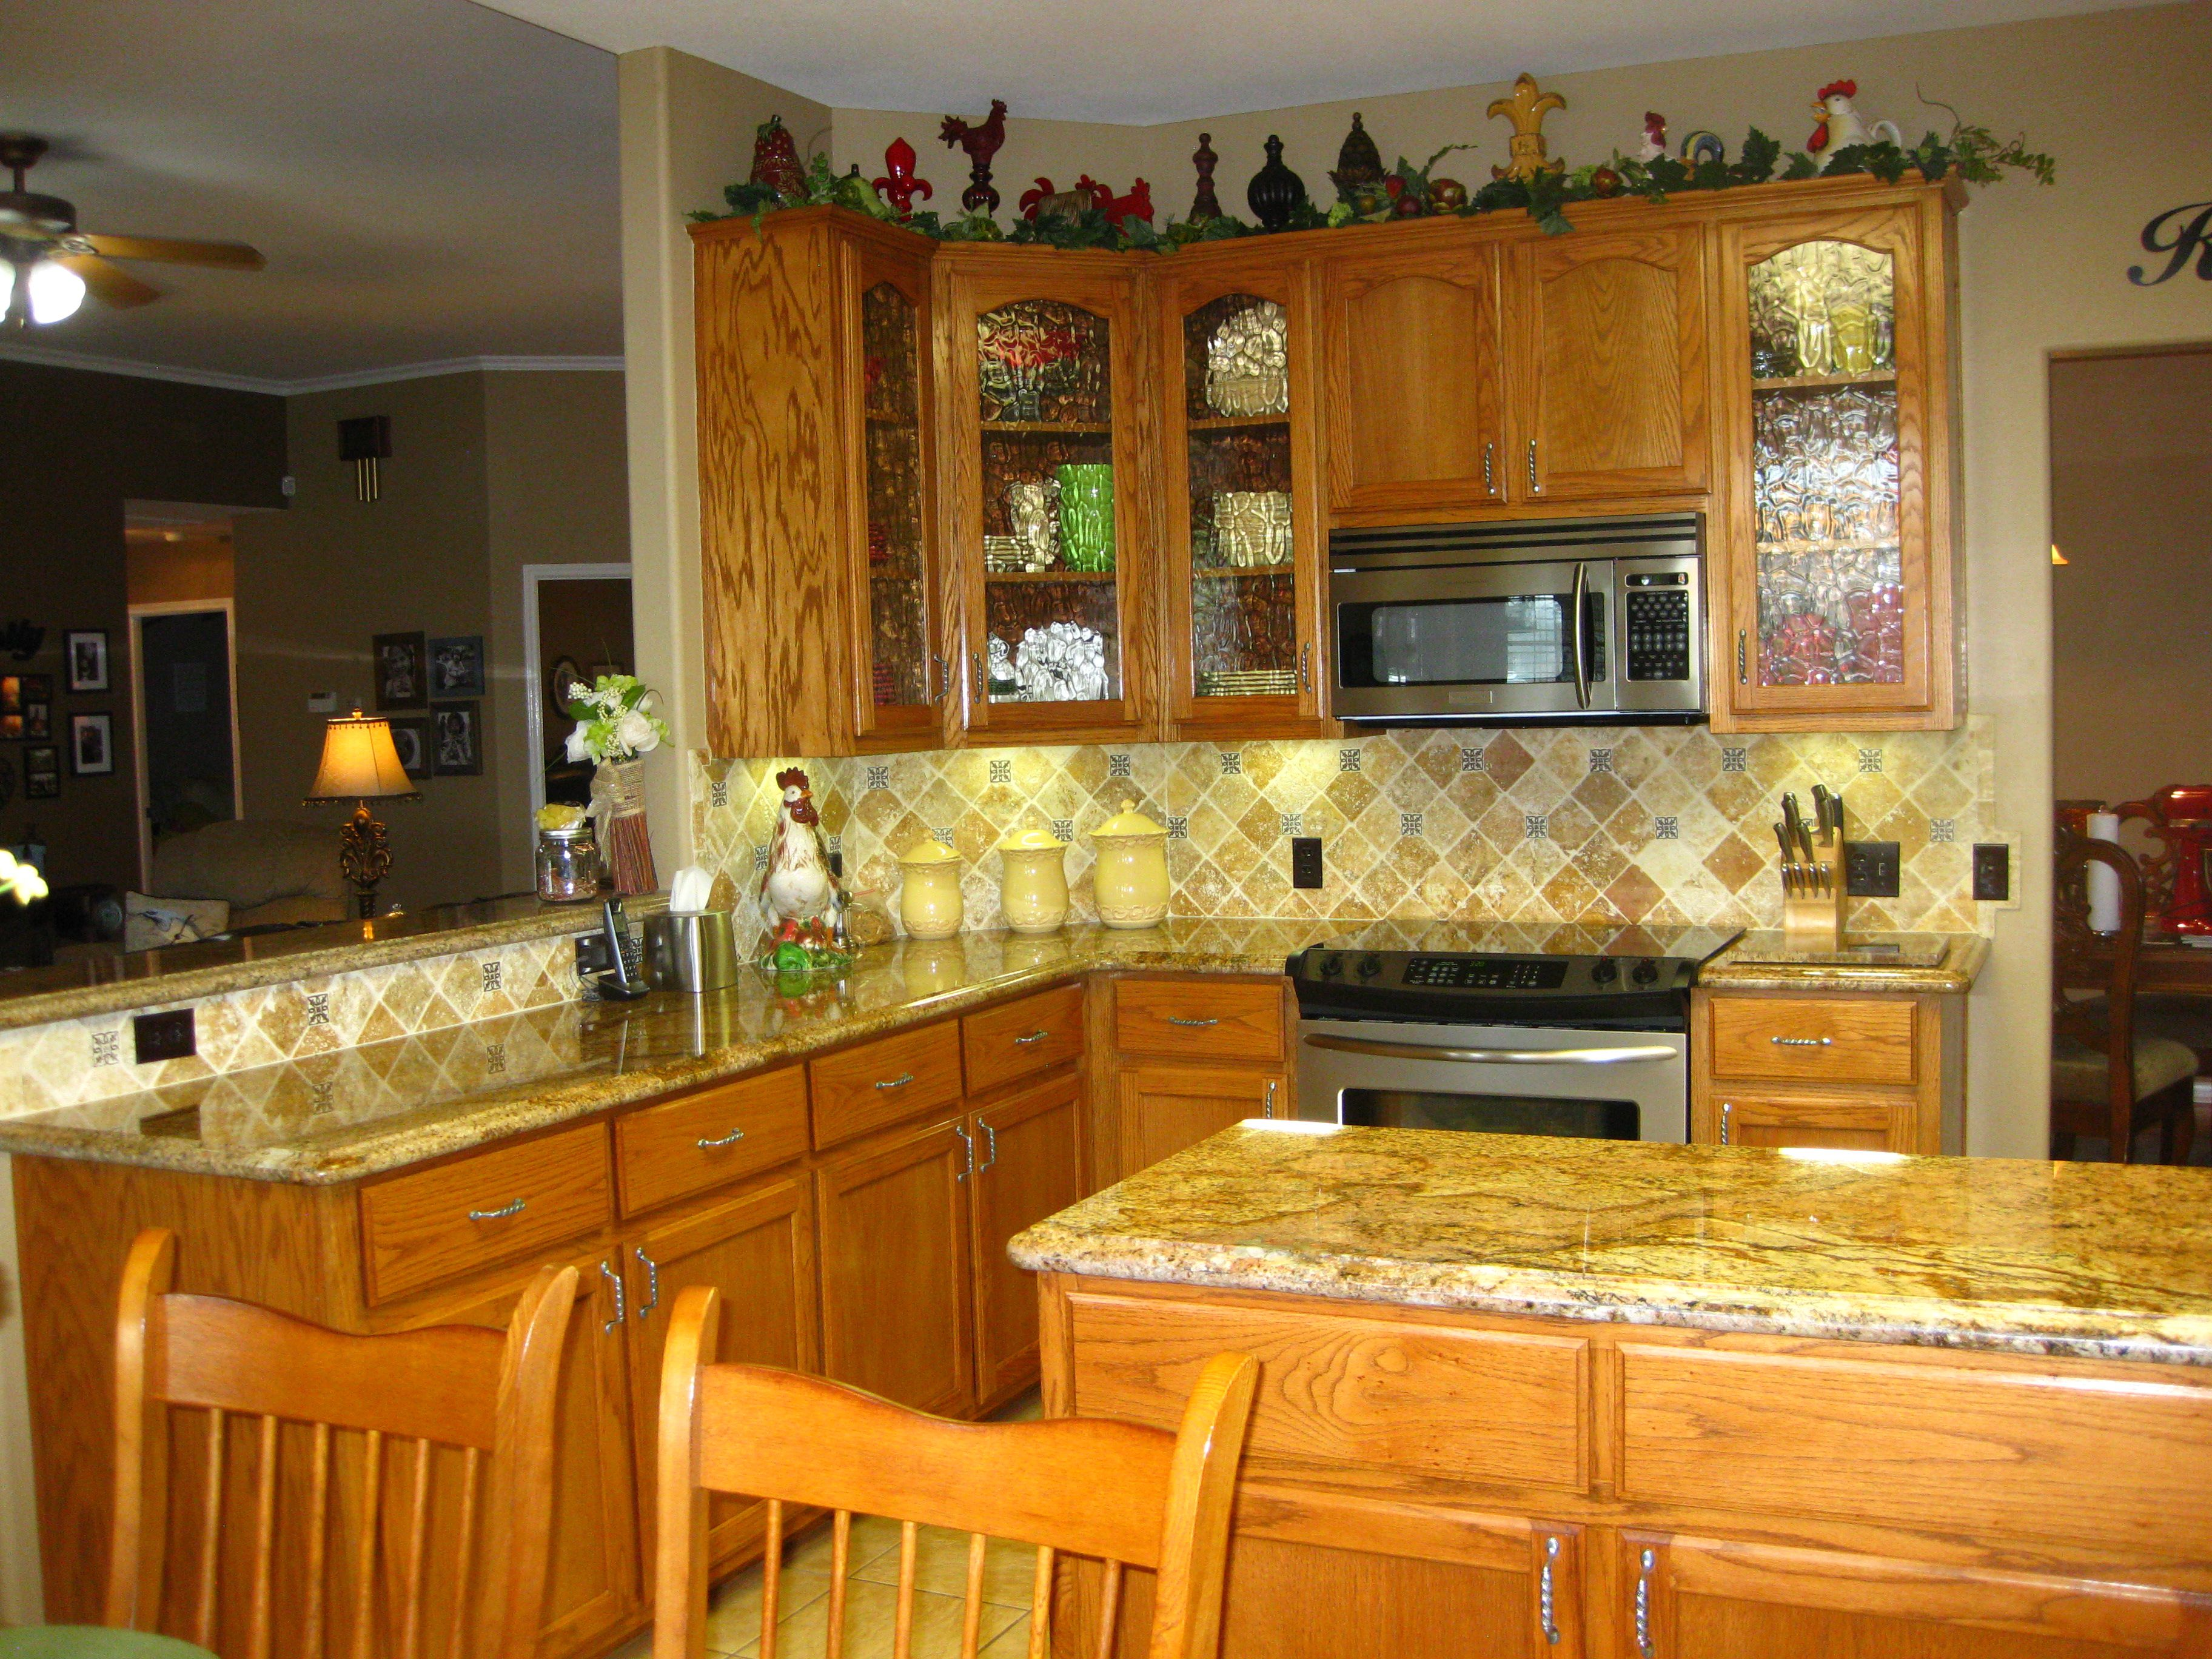 Kitchen Cabinets Victoria 208 Macon Creek Victoria Tx 77901 Kitchens Cook Up The Love